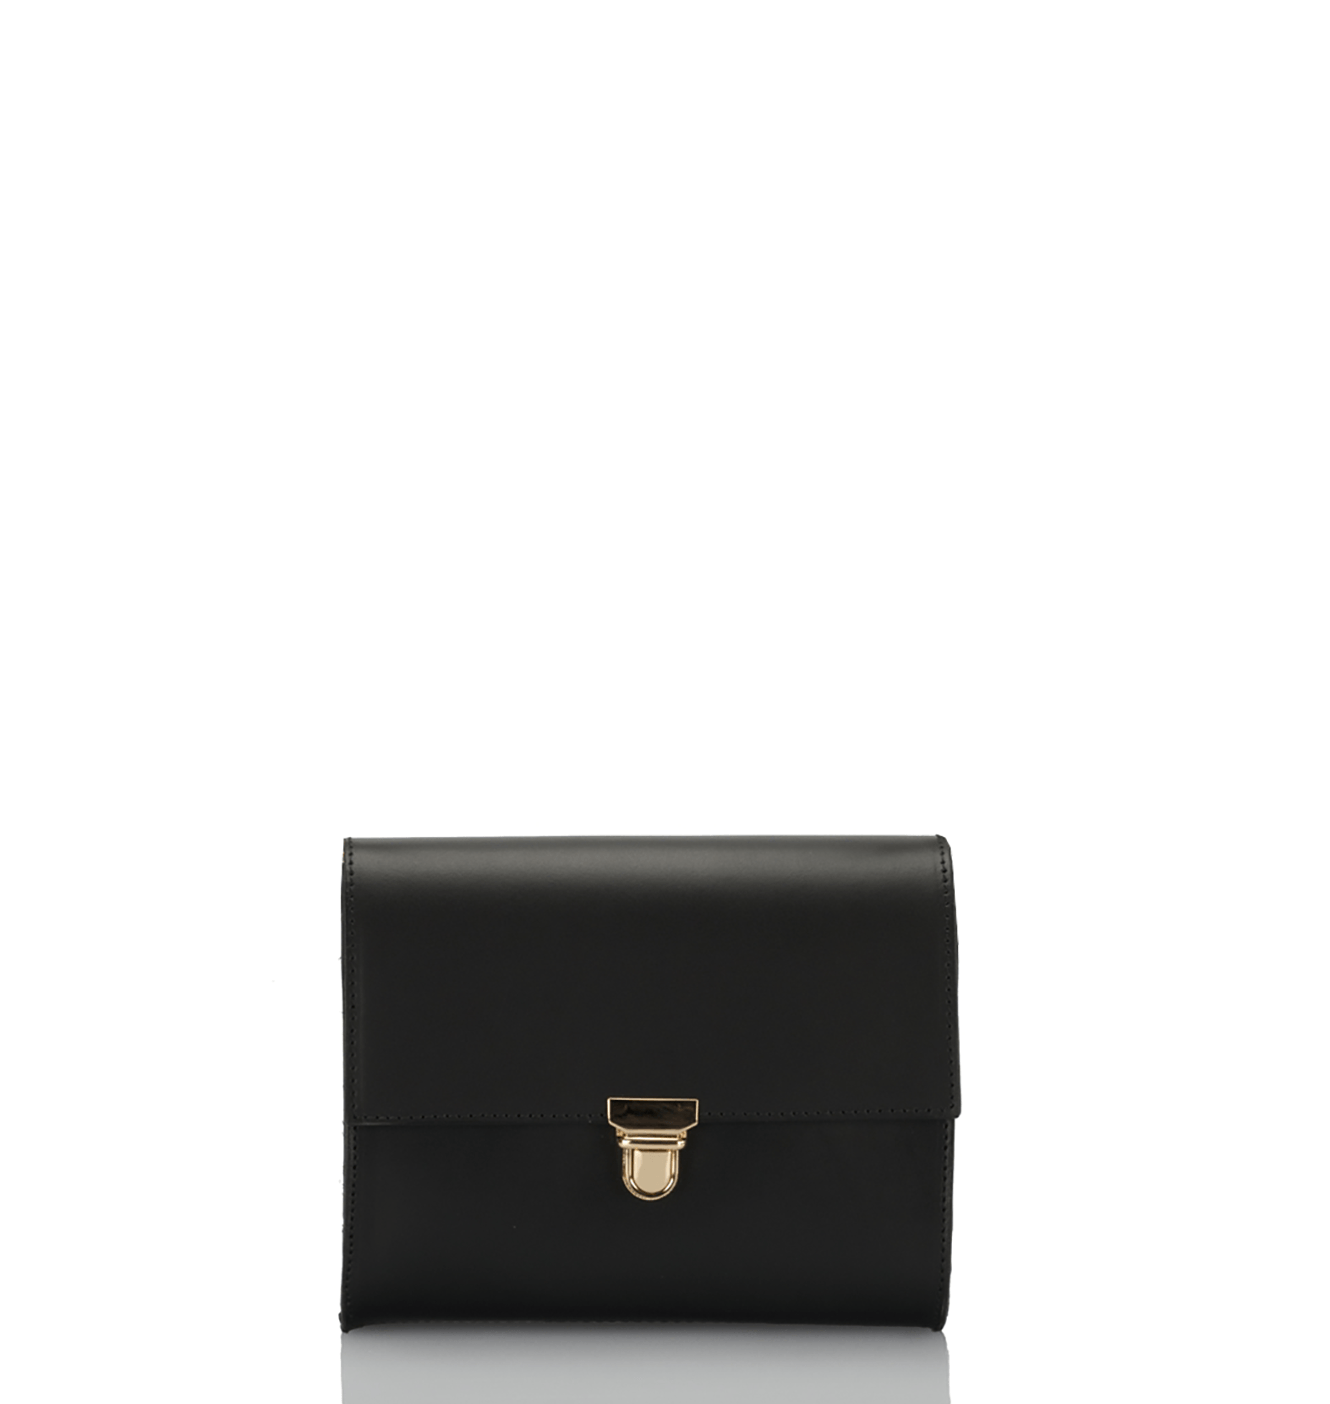 The Classic Clutch - Onyx Black - GRACEBURY